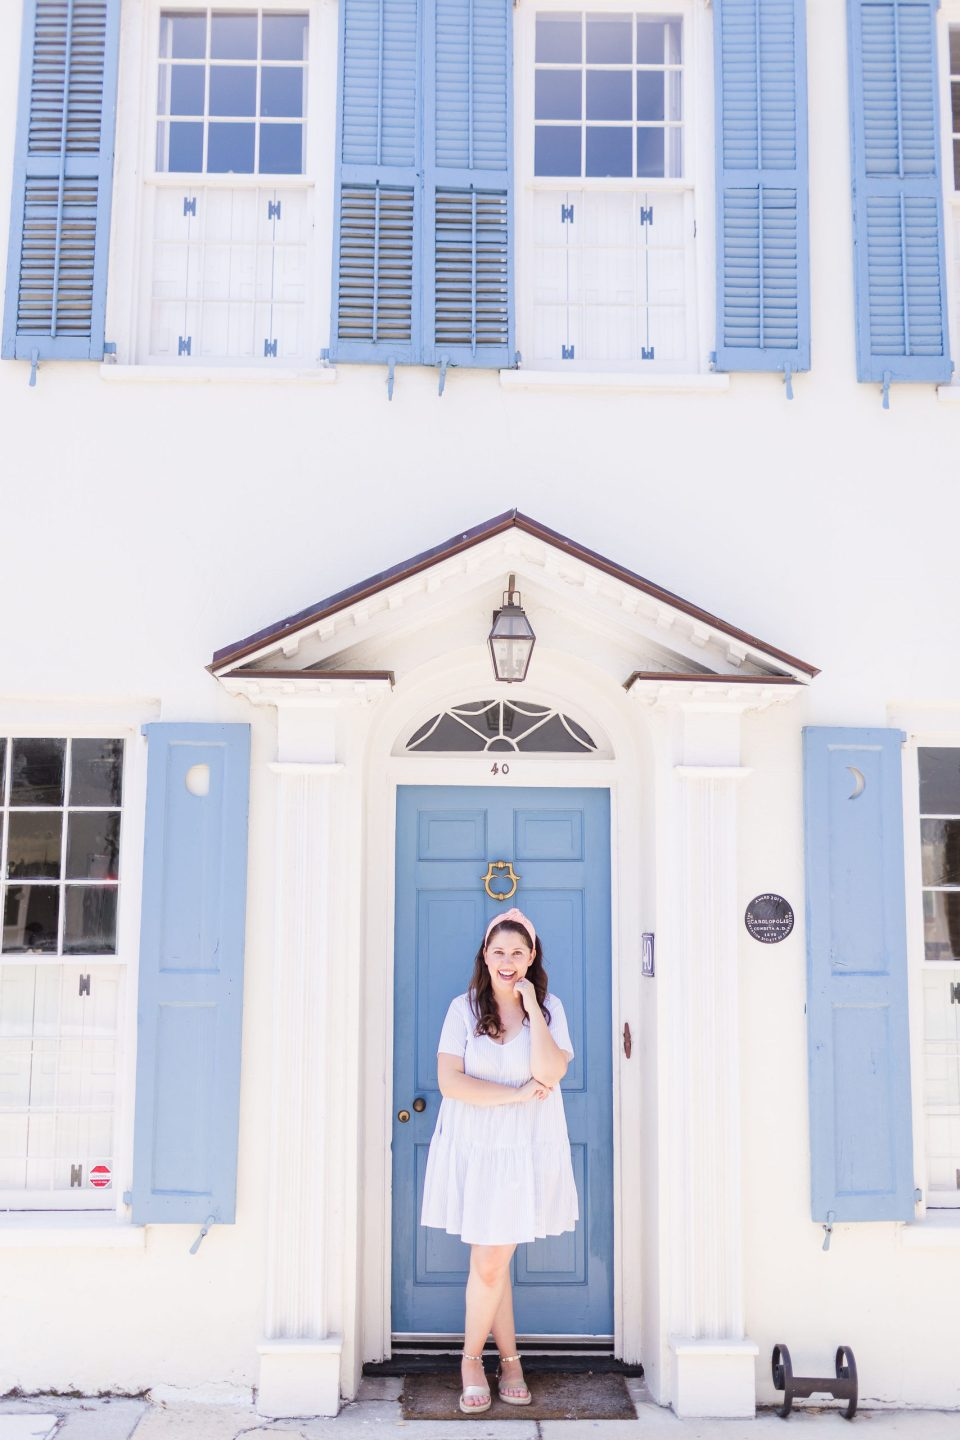 The best time to ask for review: Kate Dye, Charleston photographer and educator, shares how to get better reviews for your photography buisness